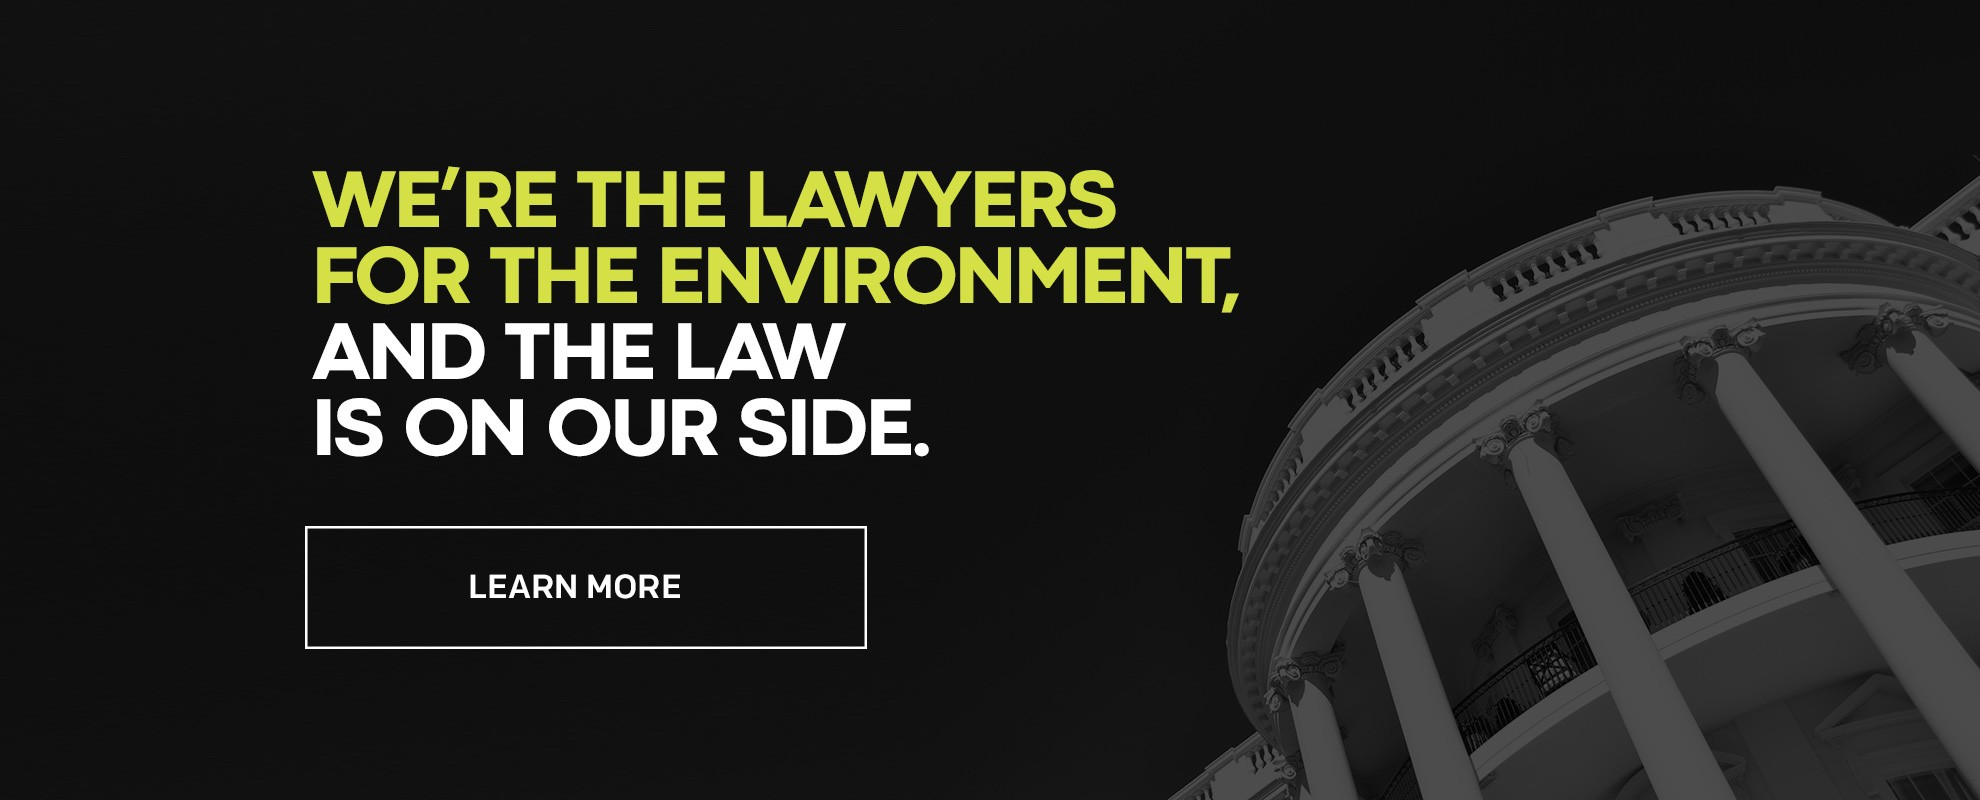 We're the lawyers for the environment, and the law is on our side.